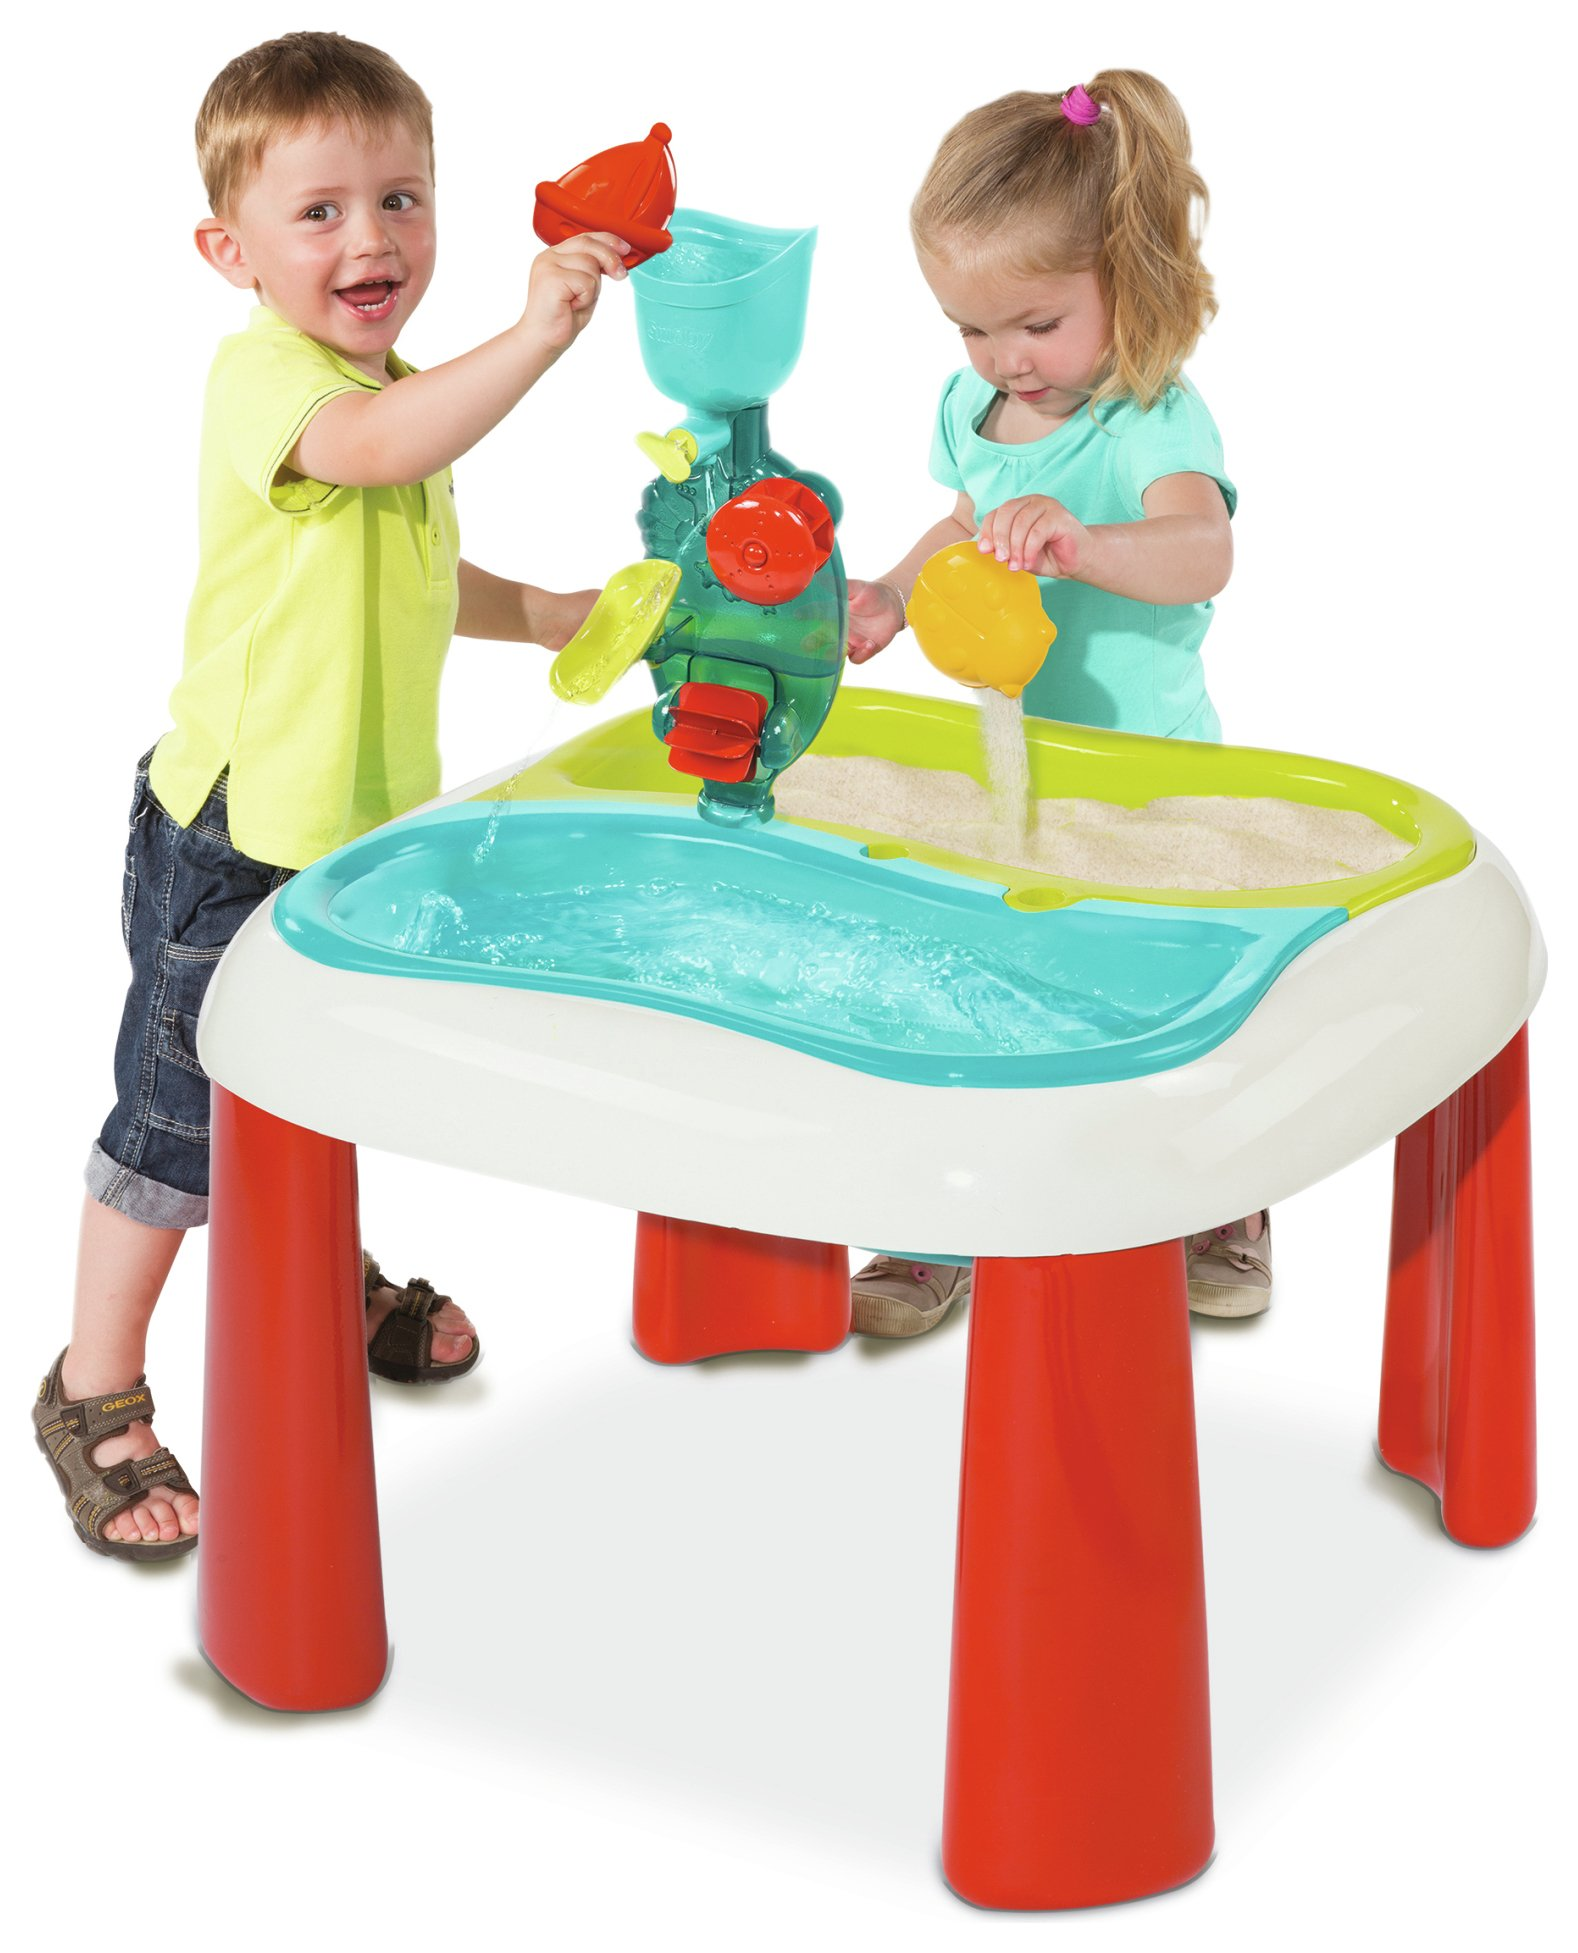 Smoby - Sand and Water Play Table